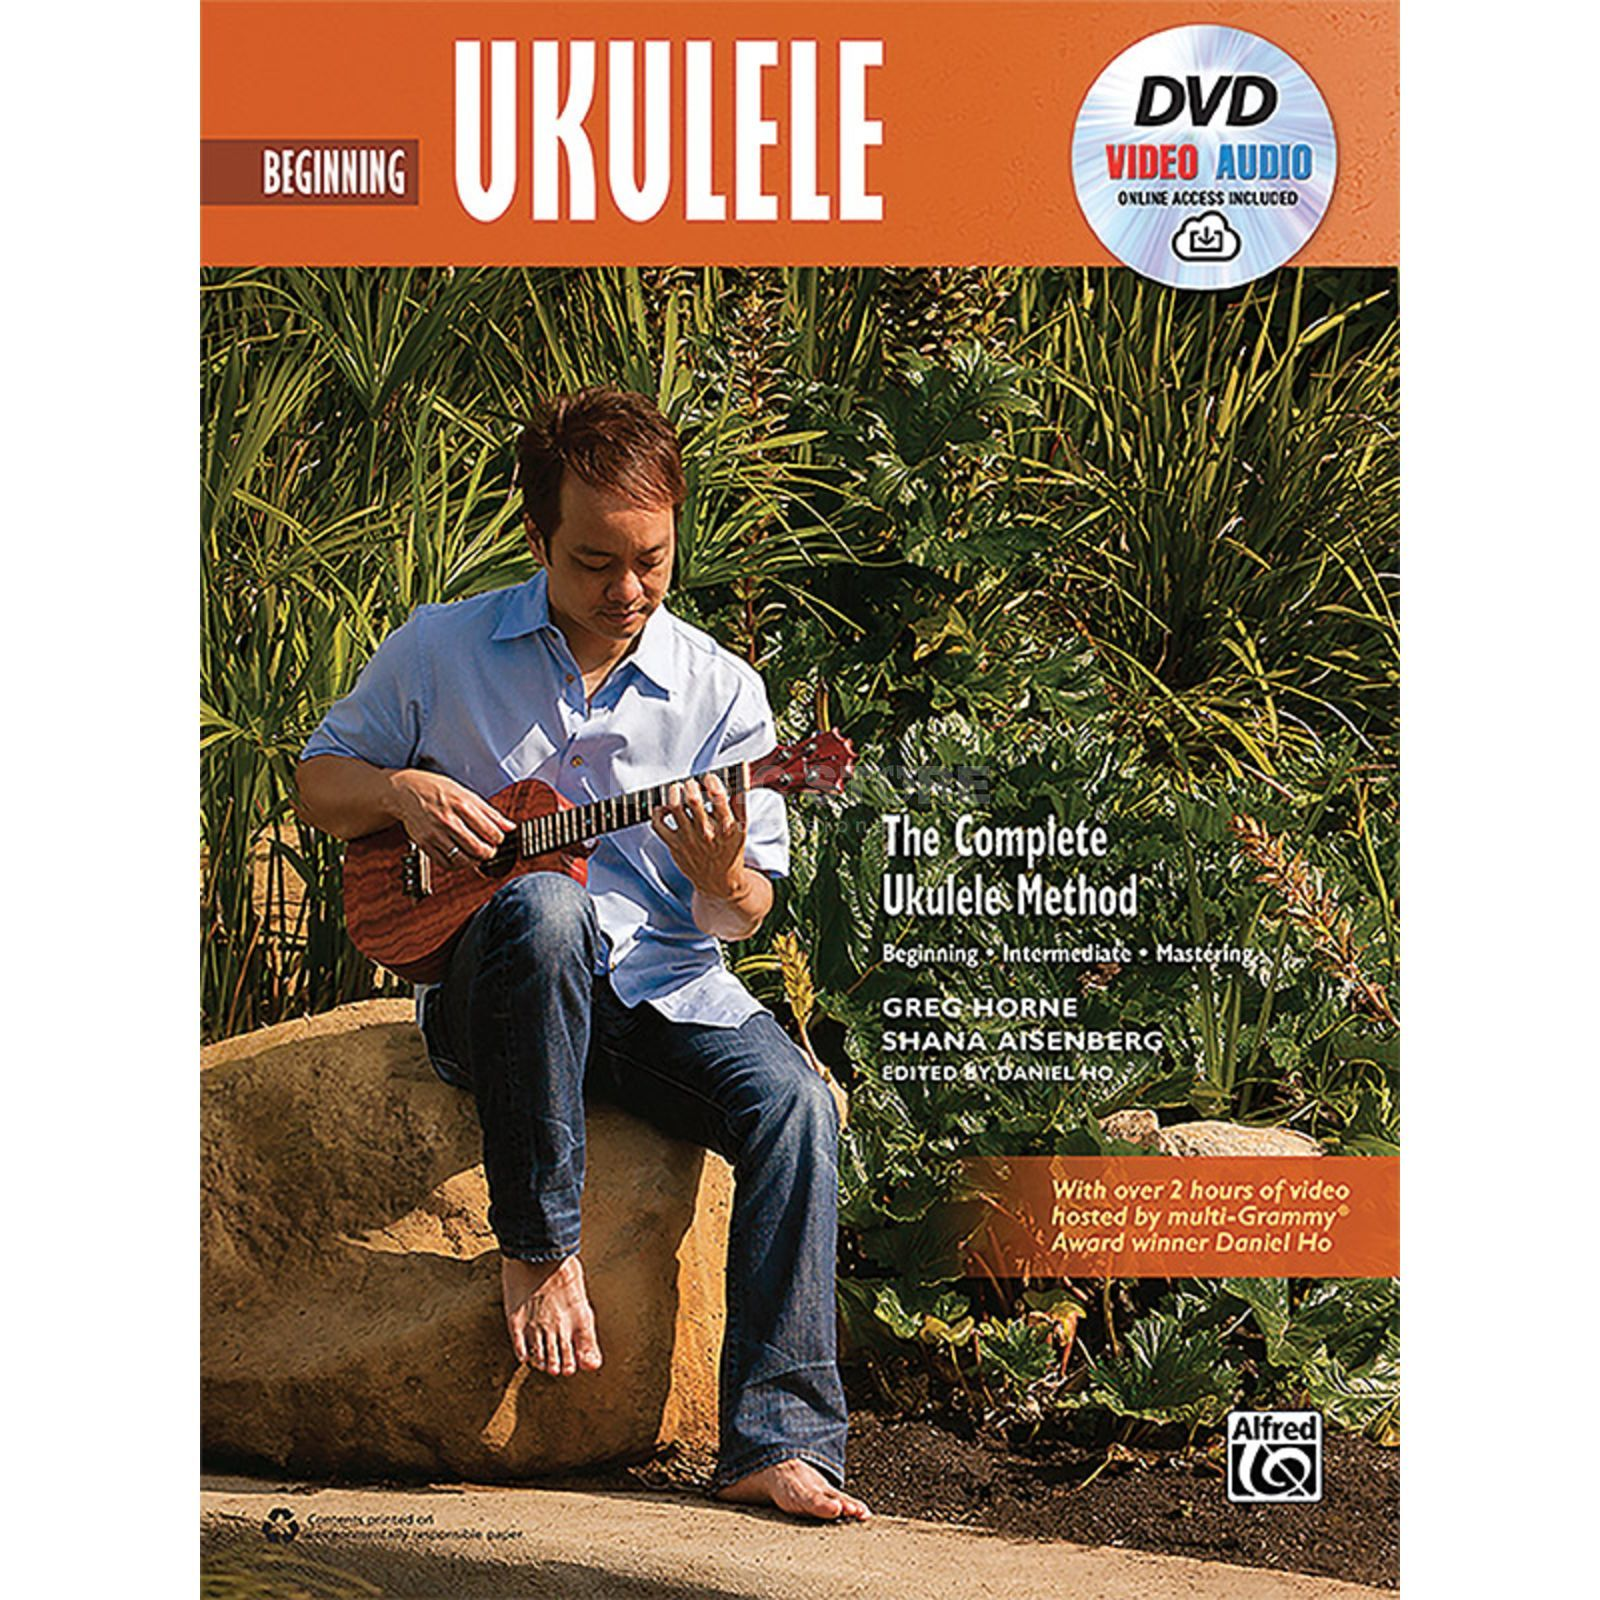 Alfred Music The Complete Ukulele Method: Beginning Ukulele Product Image